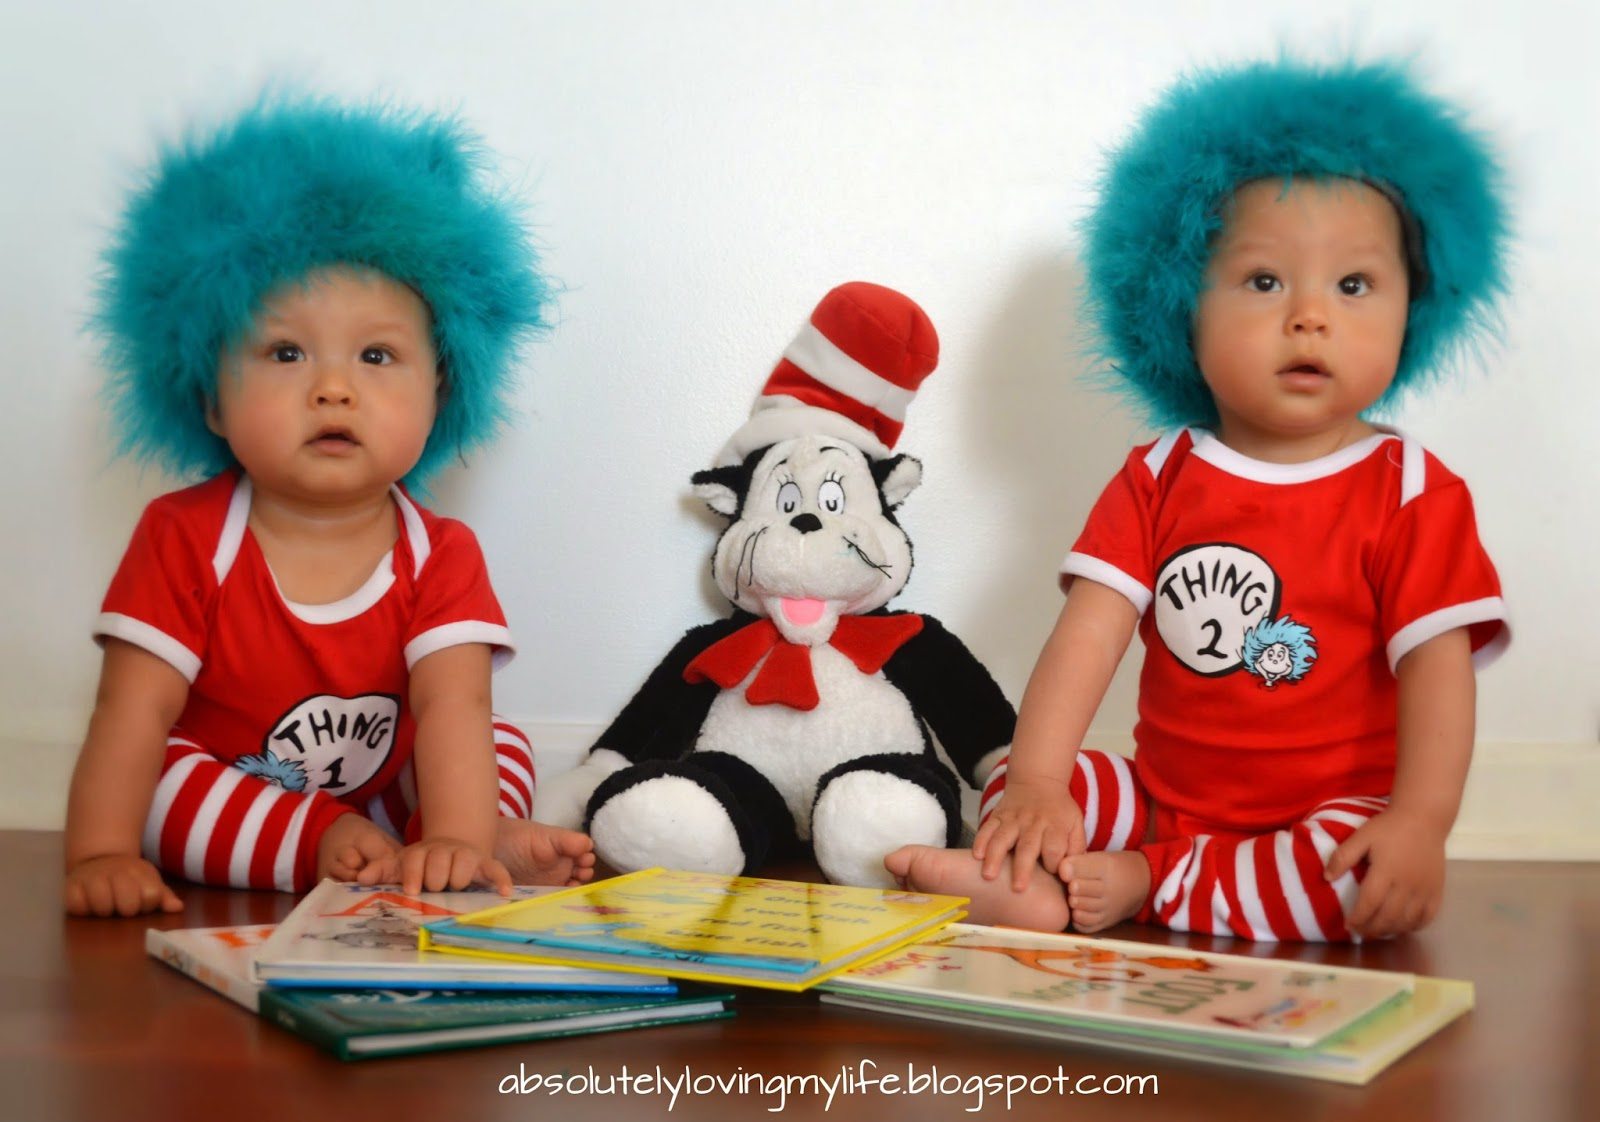 Loving Life Our Twins First Halloween Costumes Thing 1 And Thing 2